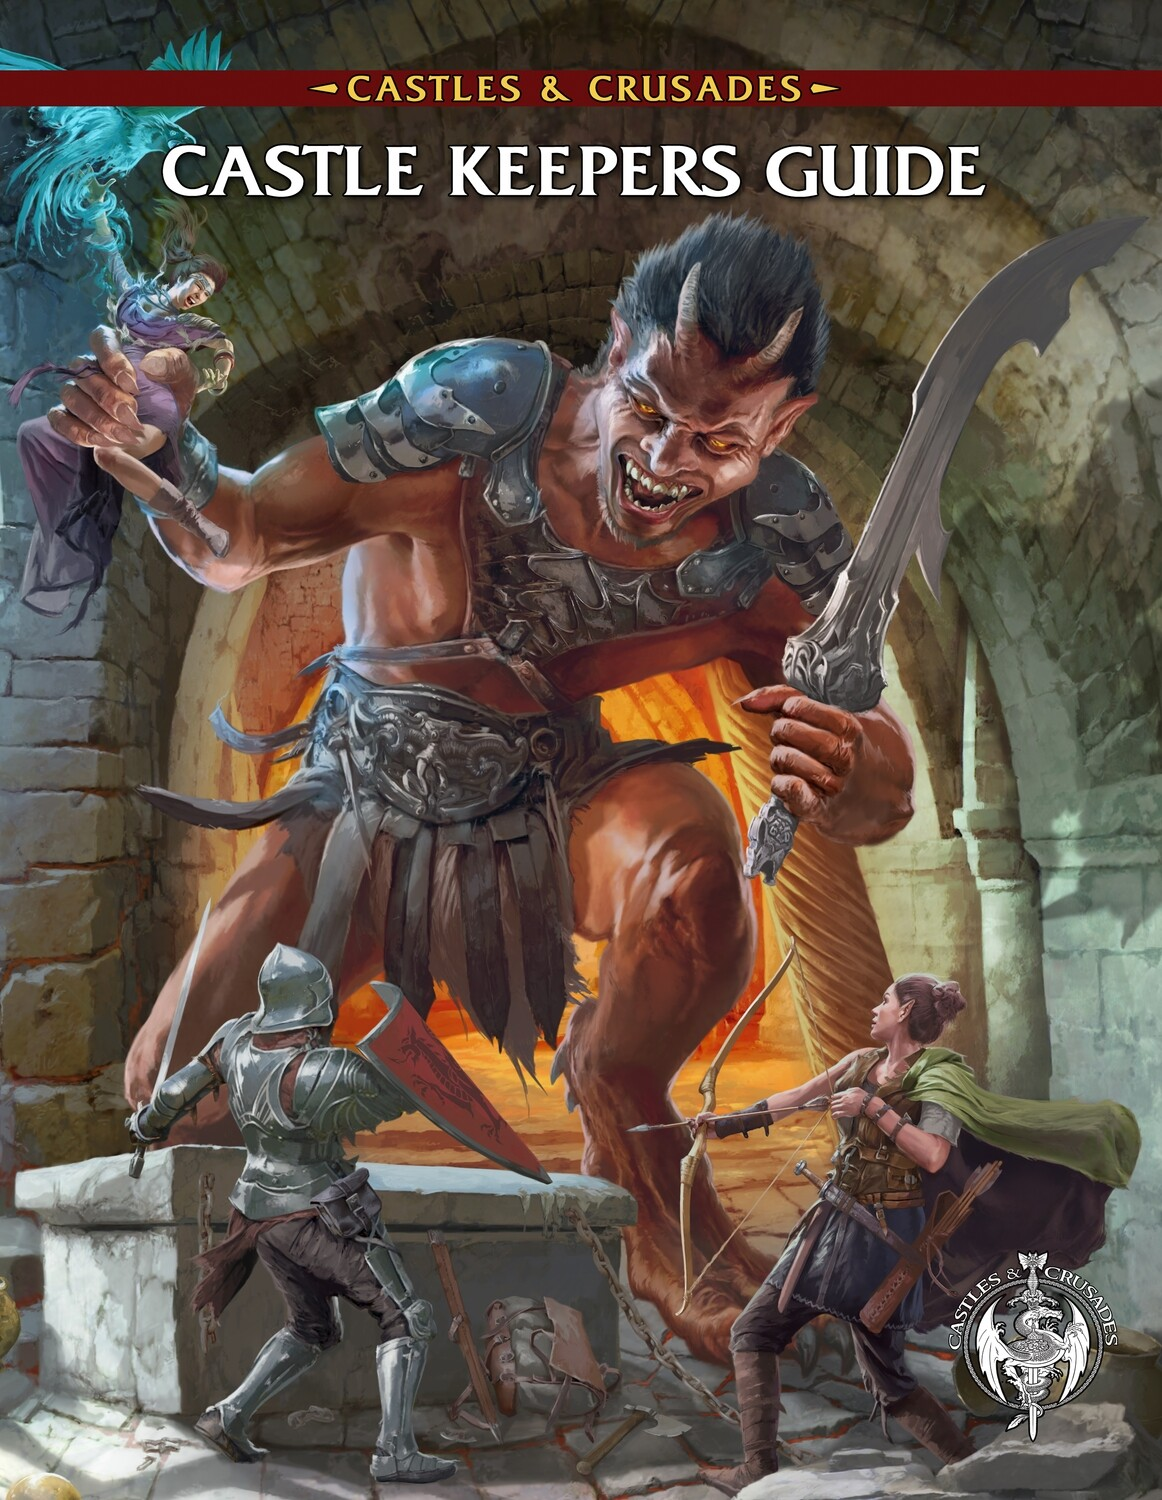 Castle Keepers Guide